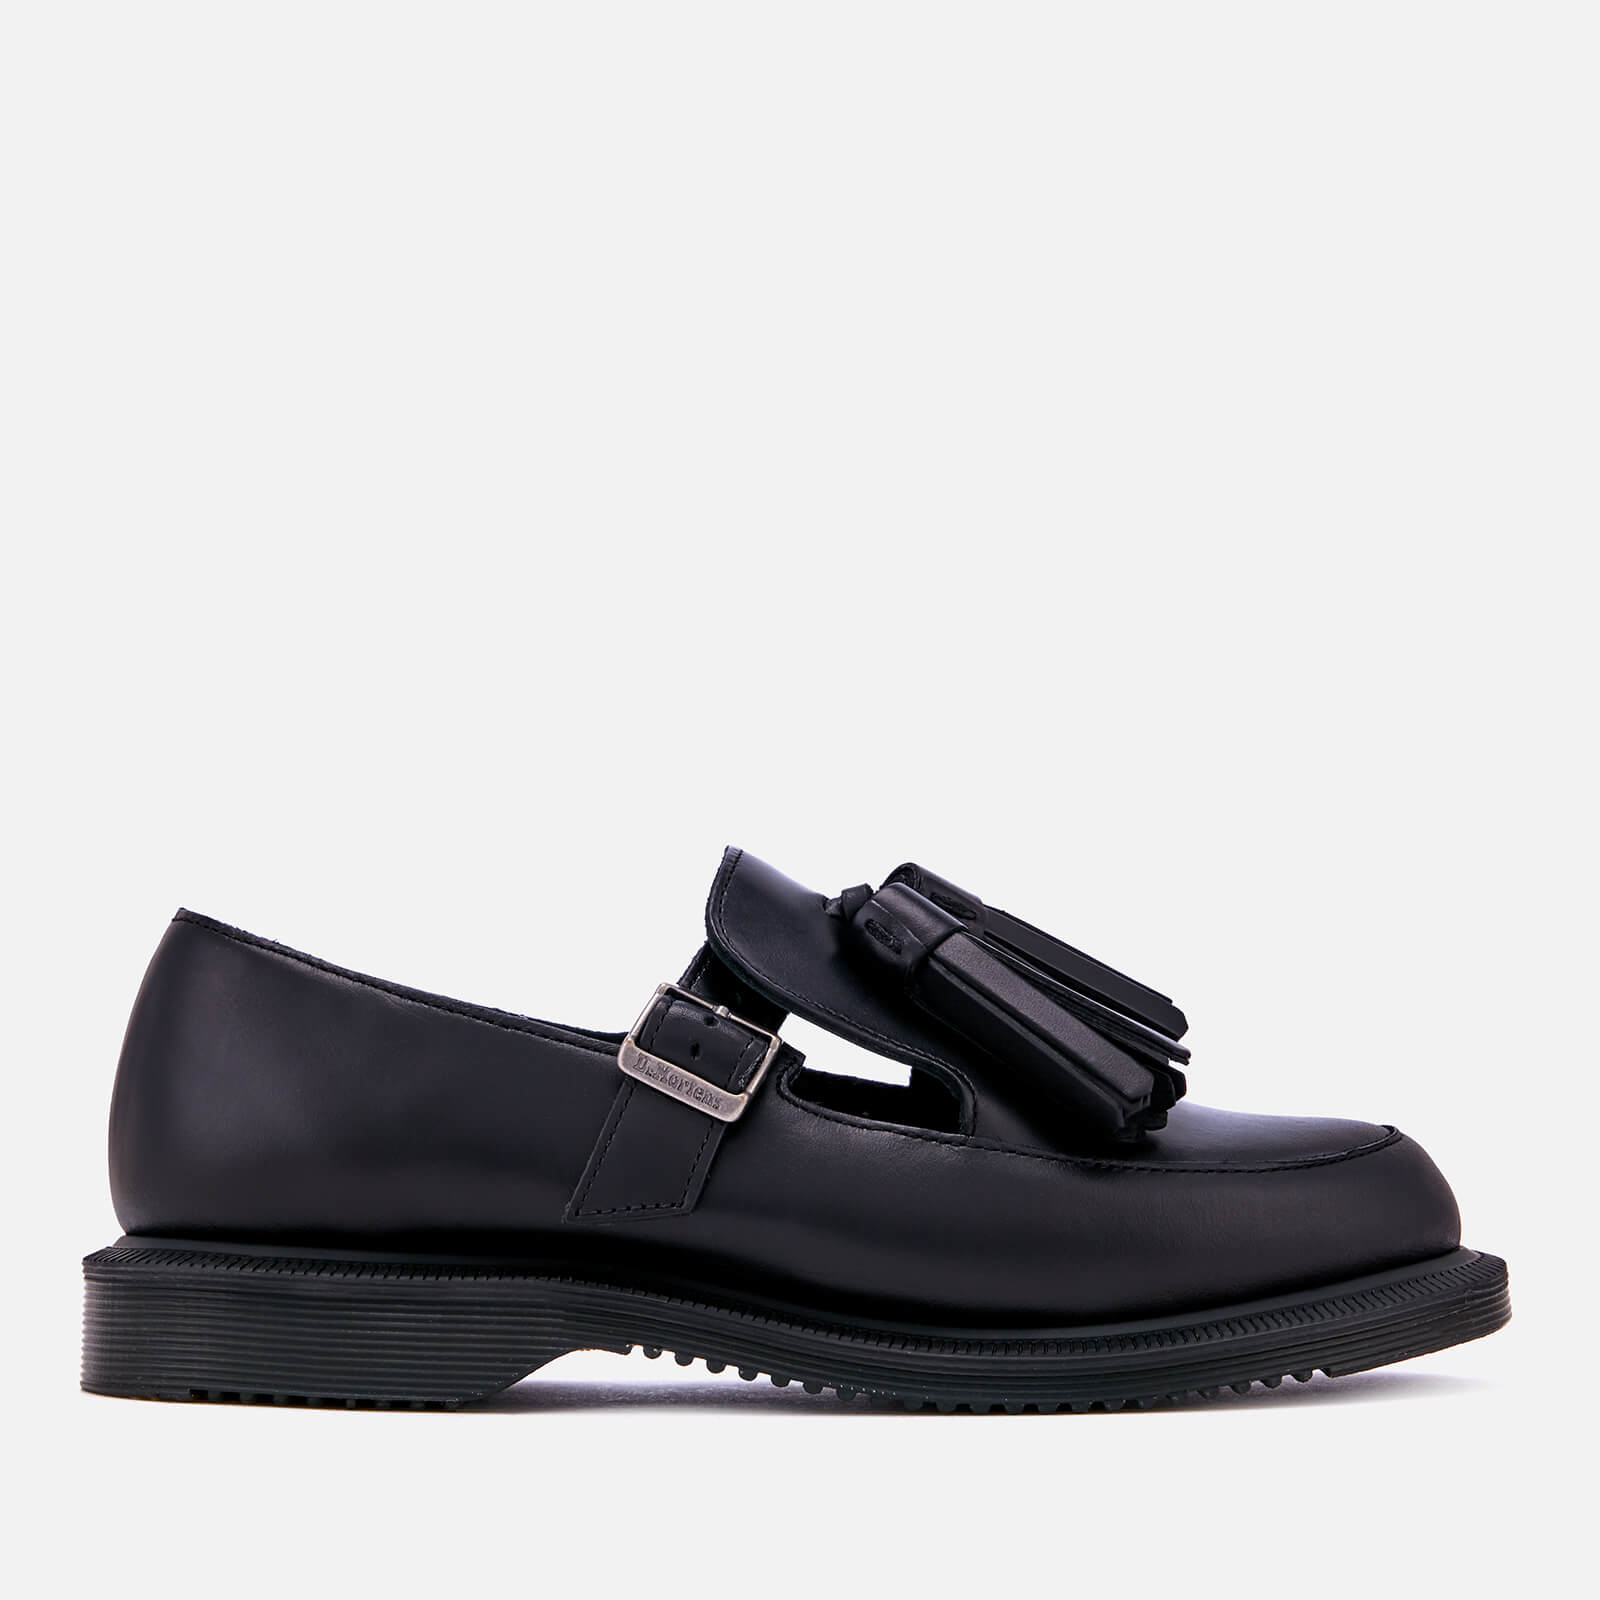 69200ccc01ee Dr. Martens Women s Gracia Brando Leather Tassel Flats - Black ...